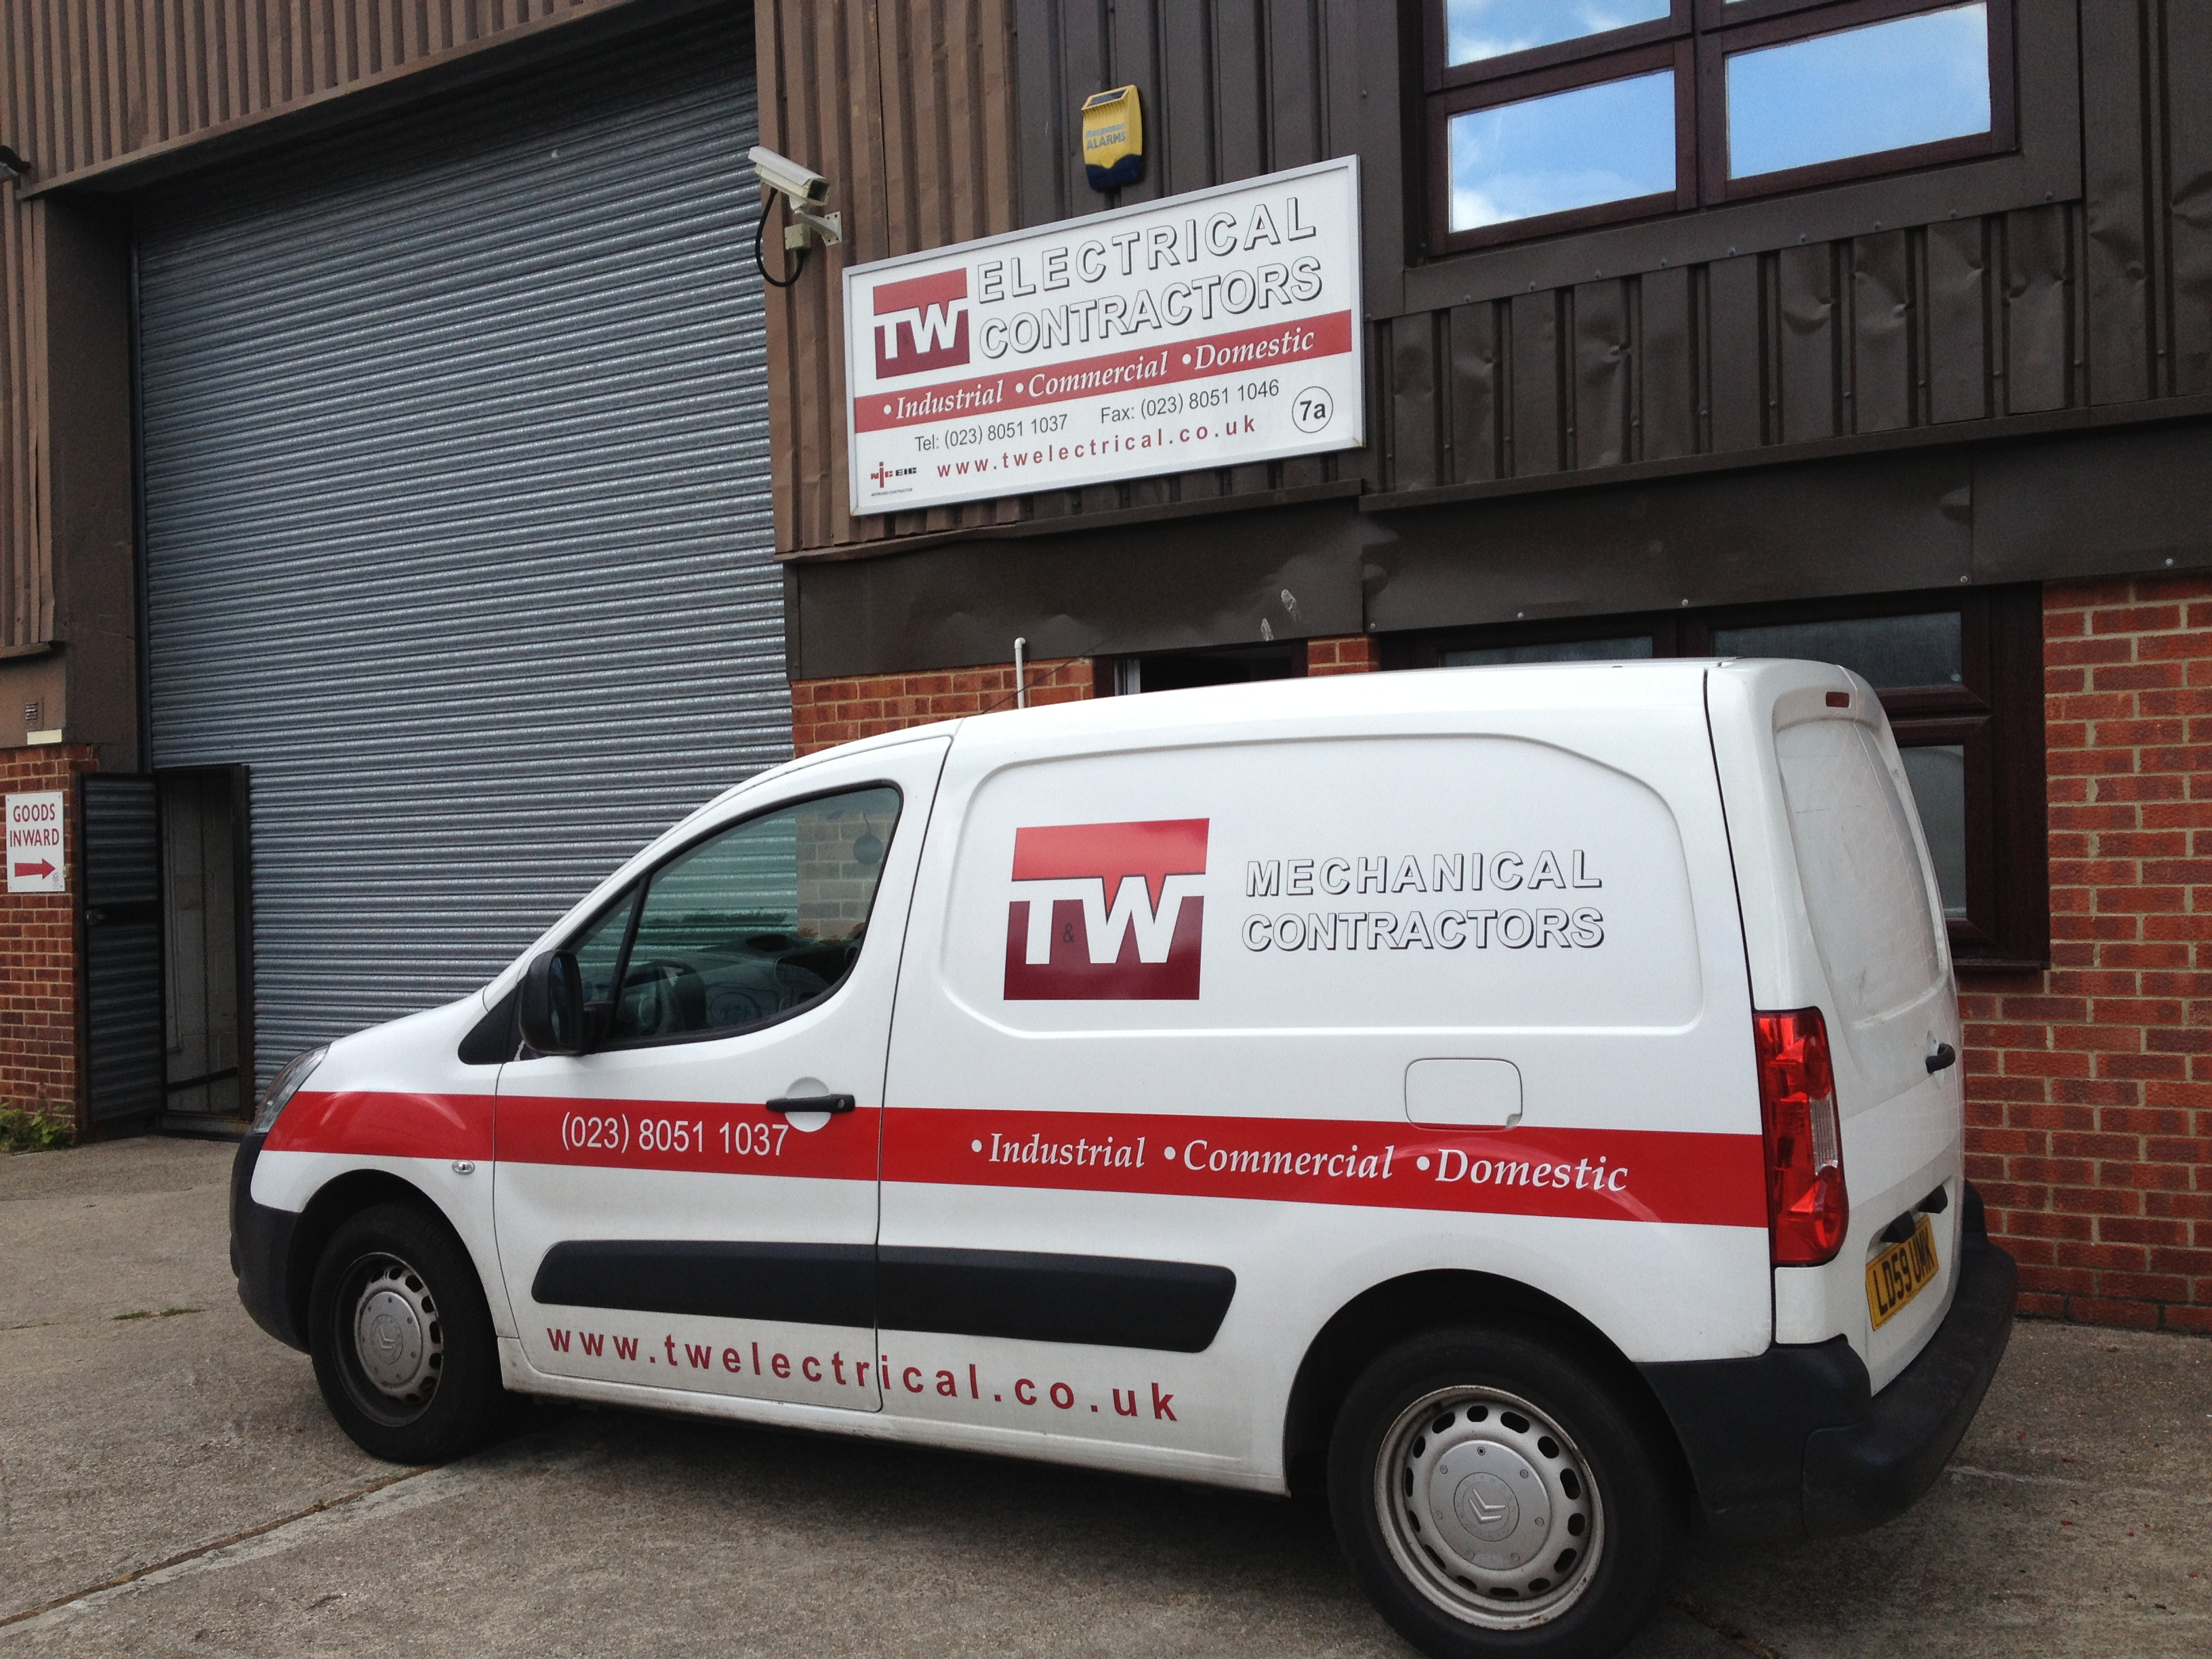 T&W Electrical